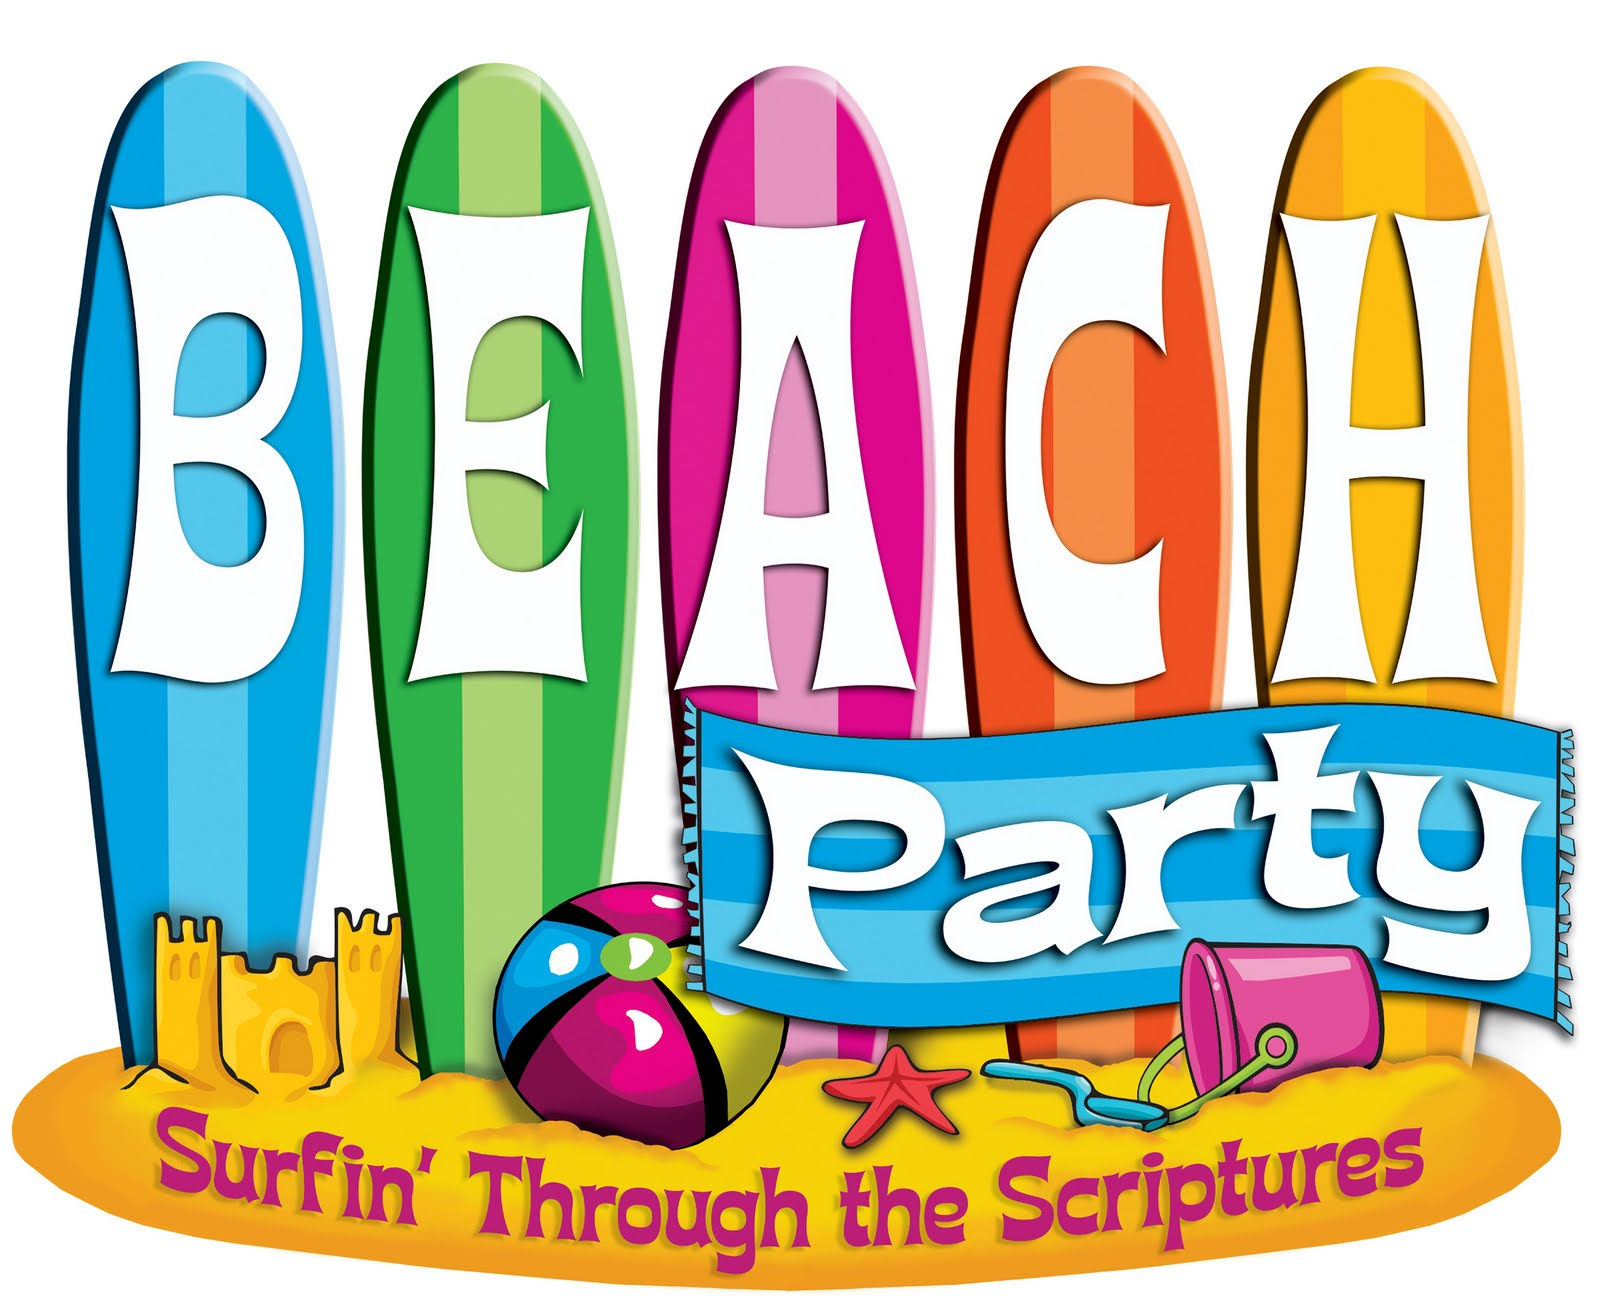 beach themed clipart at getdrawings com free for personal use rh getdrawings com beach party clip art free beach party background clipart